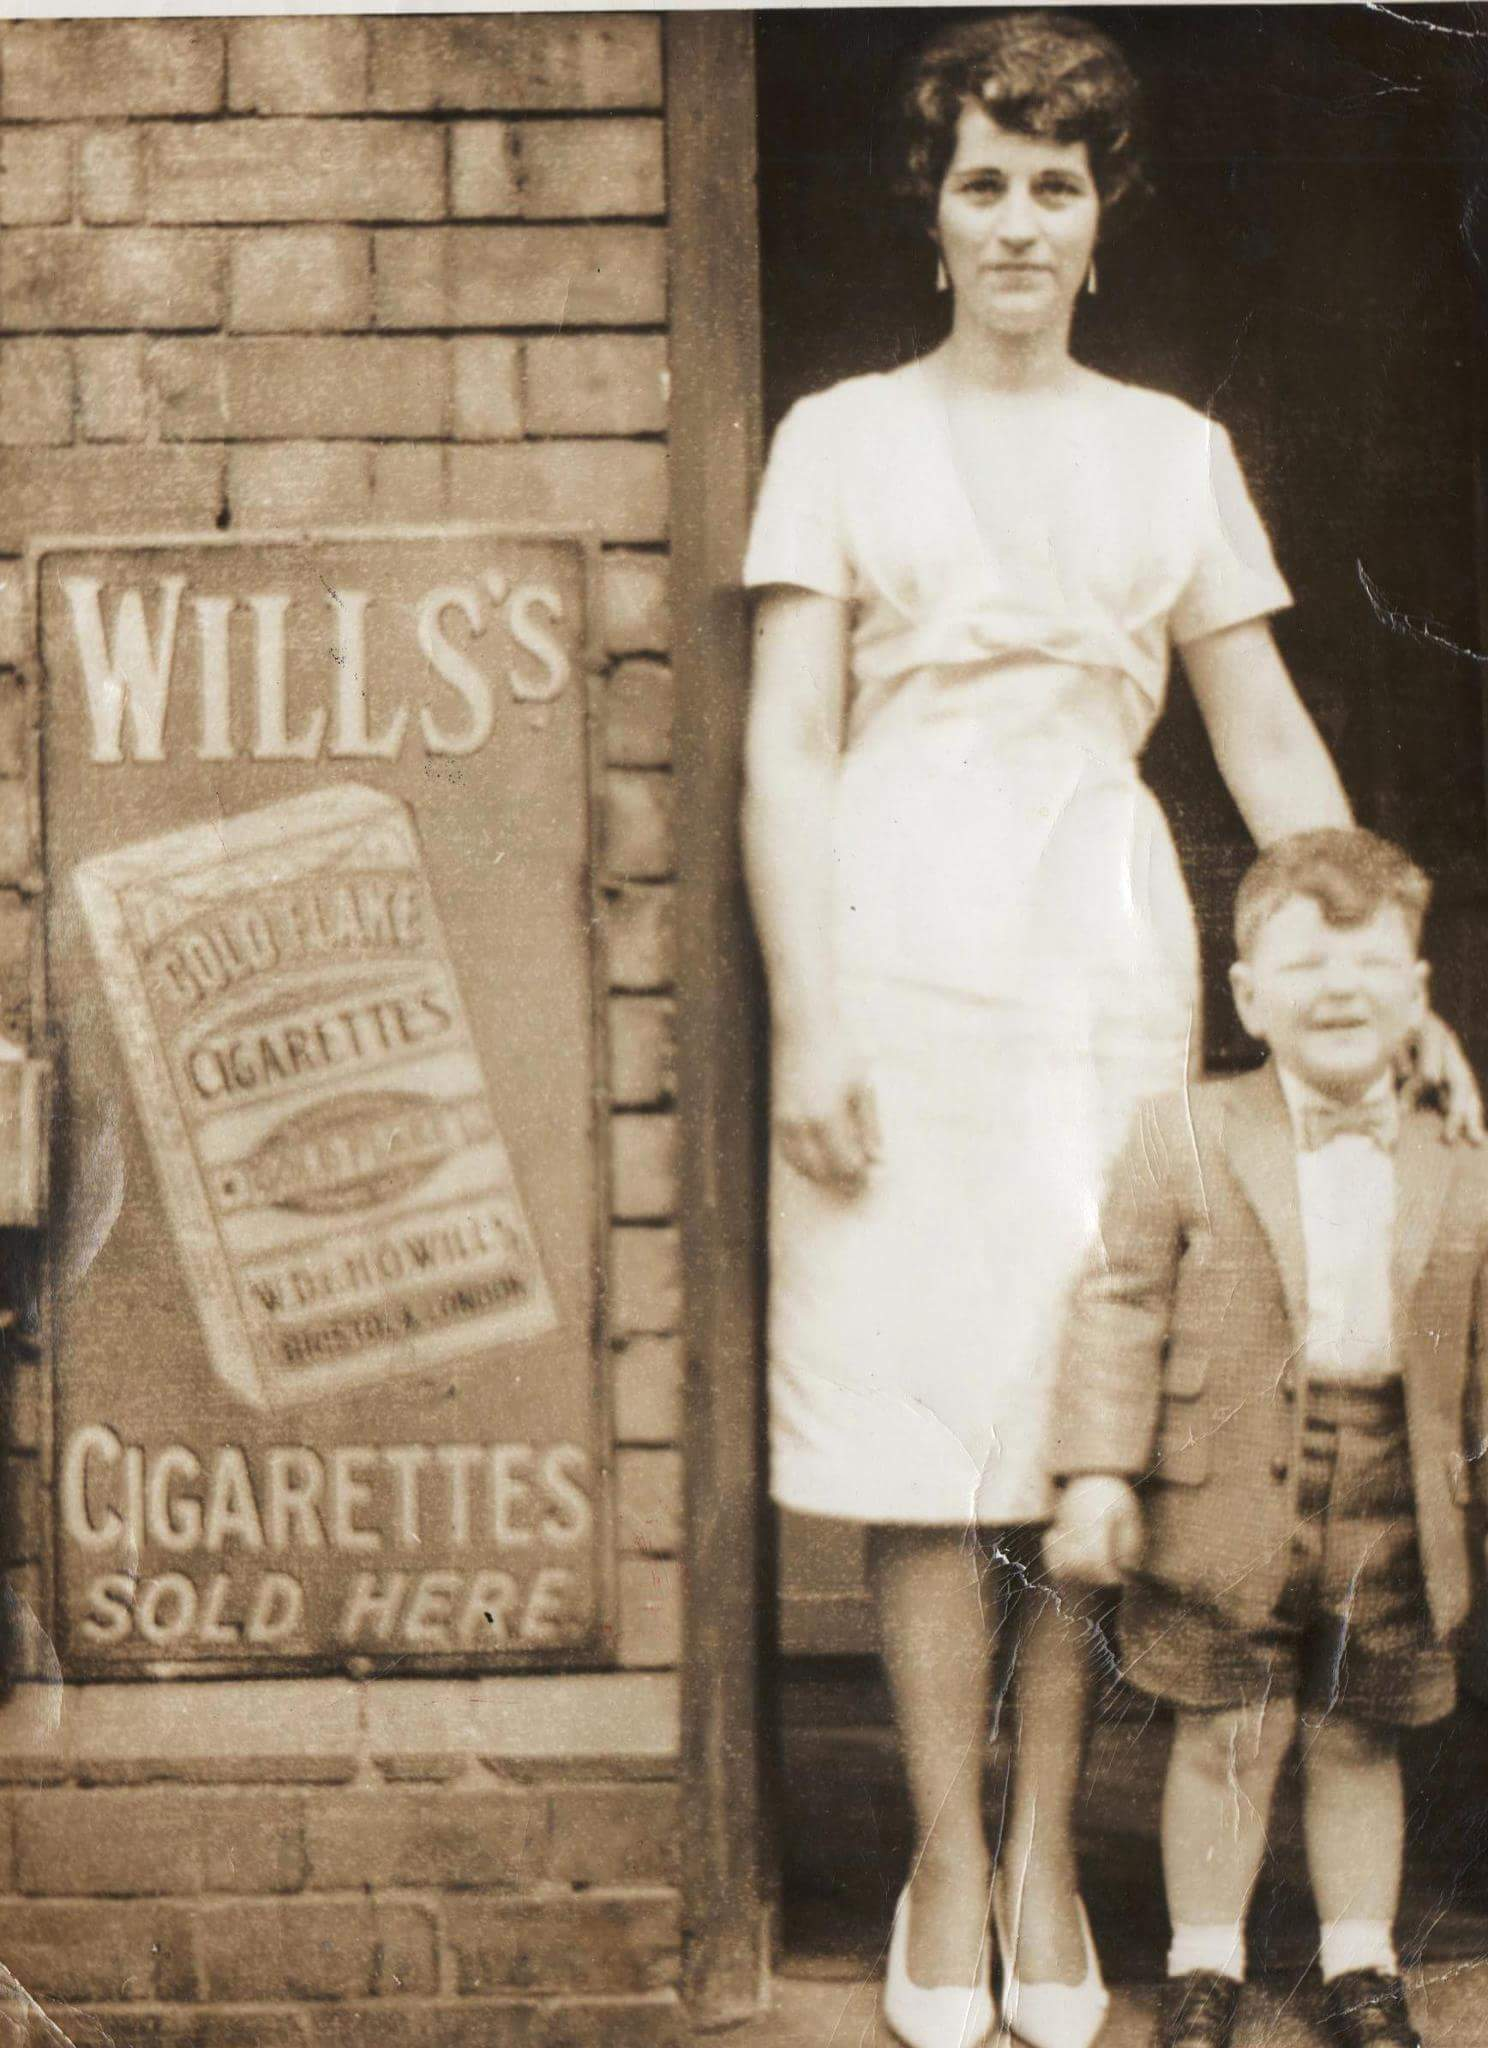 THIS IS A PHOTOGRAPH OF MY MOM AND ME OUTSIDE CORRIGANS TOBACCONIST HINGESTON STREET 1960.  Regards Tony Tombes 2\43 Hingeston Street  tombes58@hotmail.com